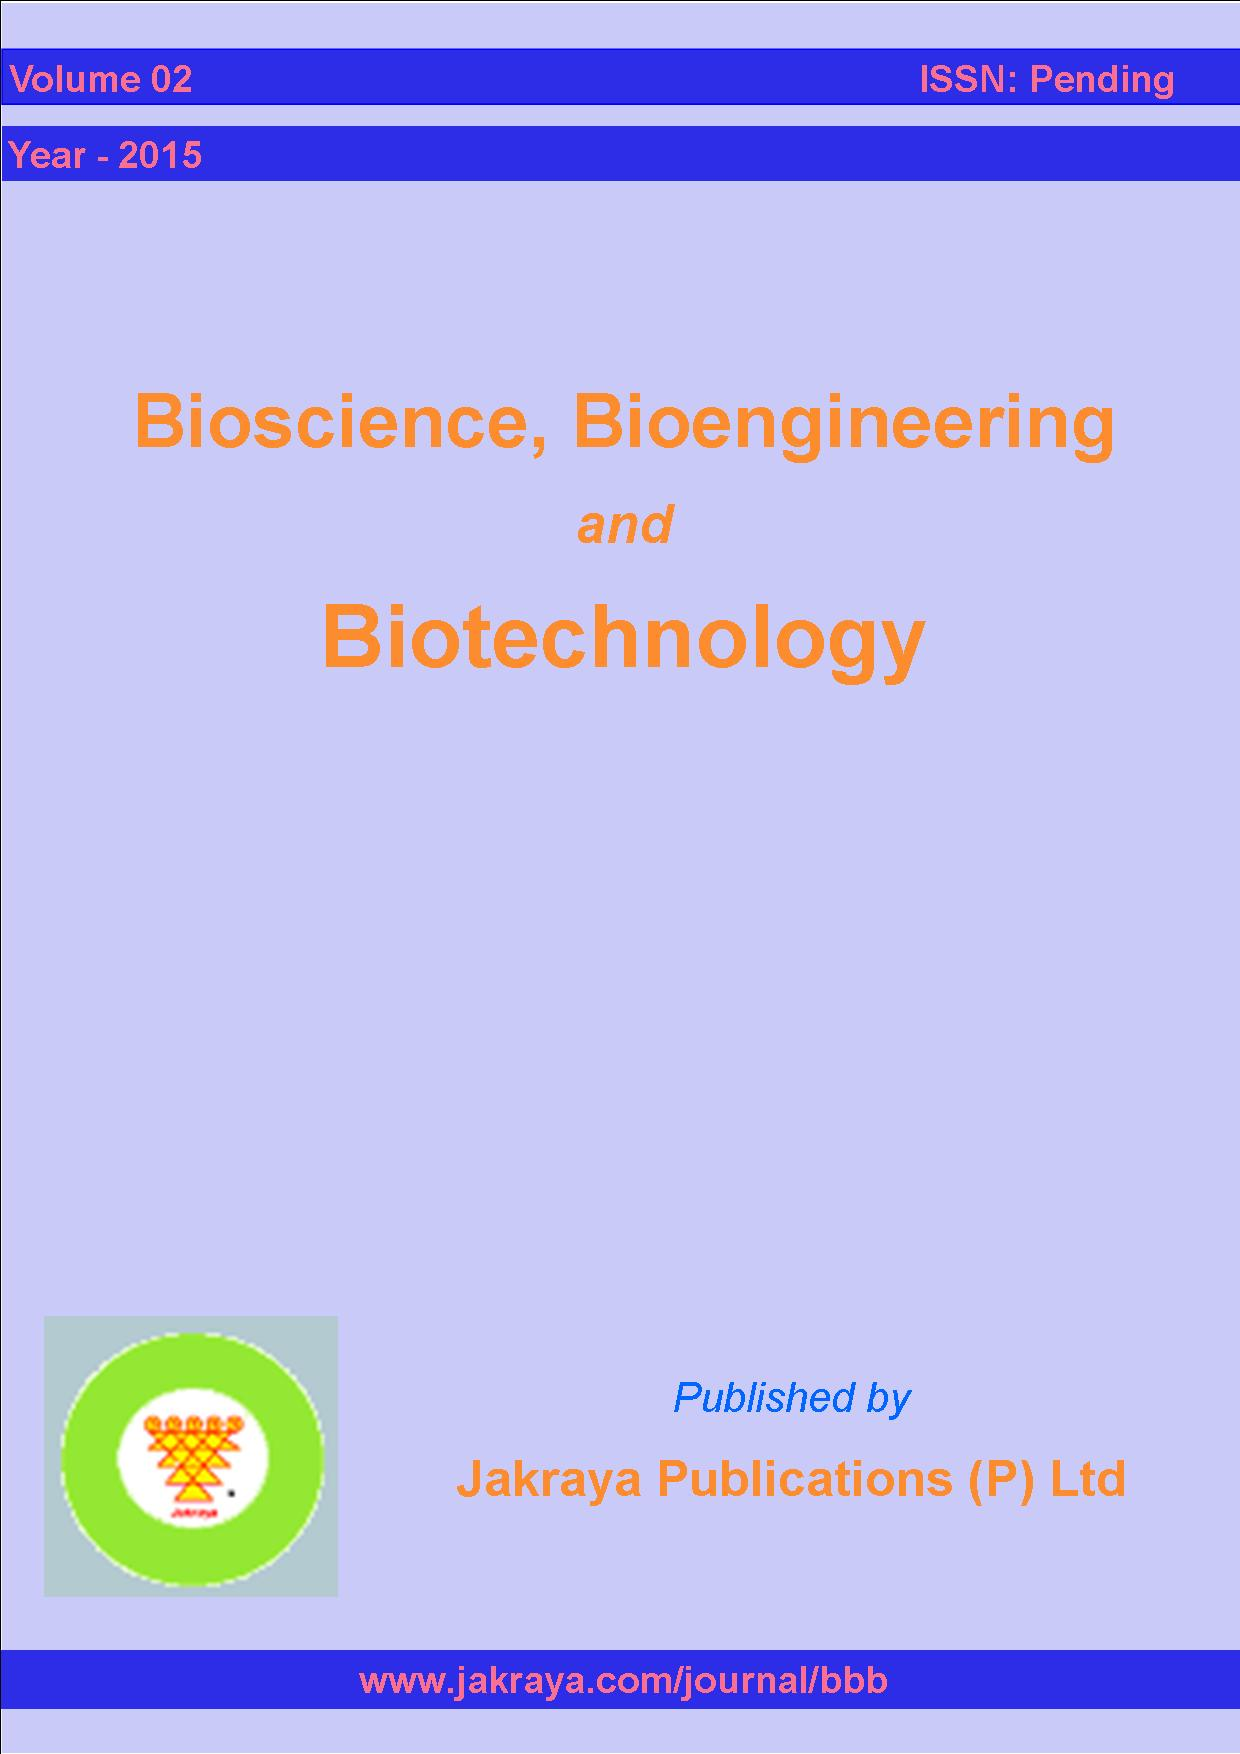 Bioscience,Bioengineering & Biotechnology